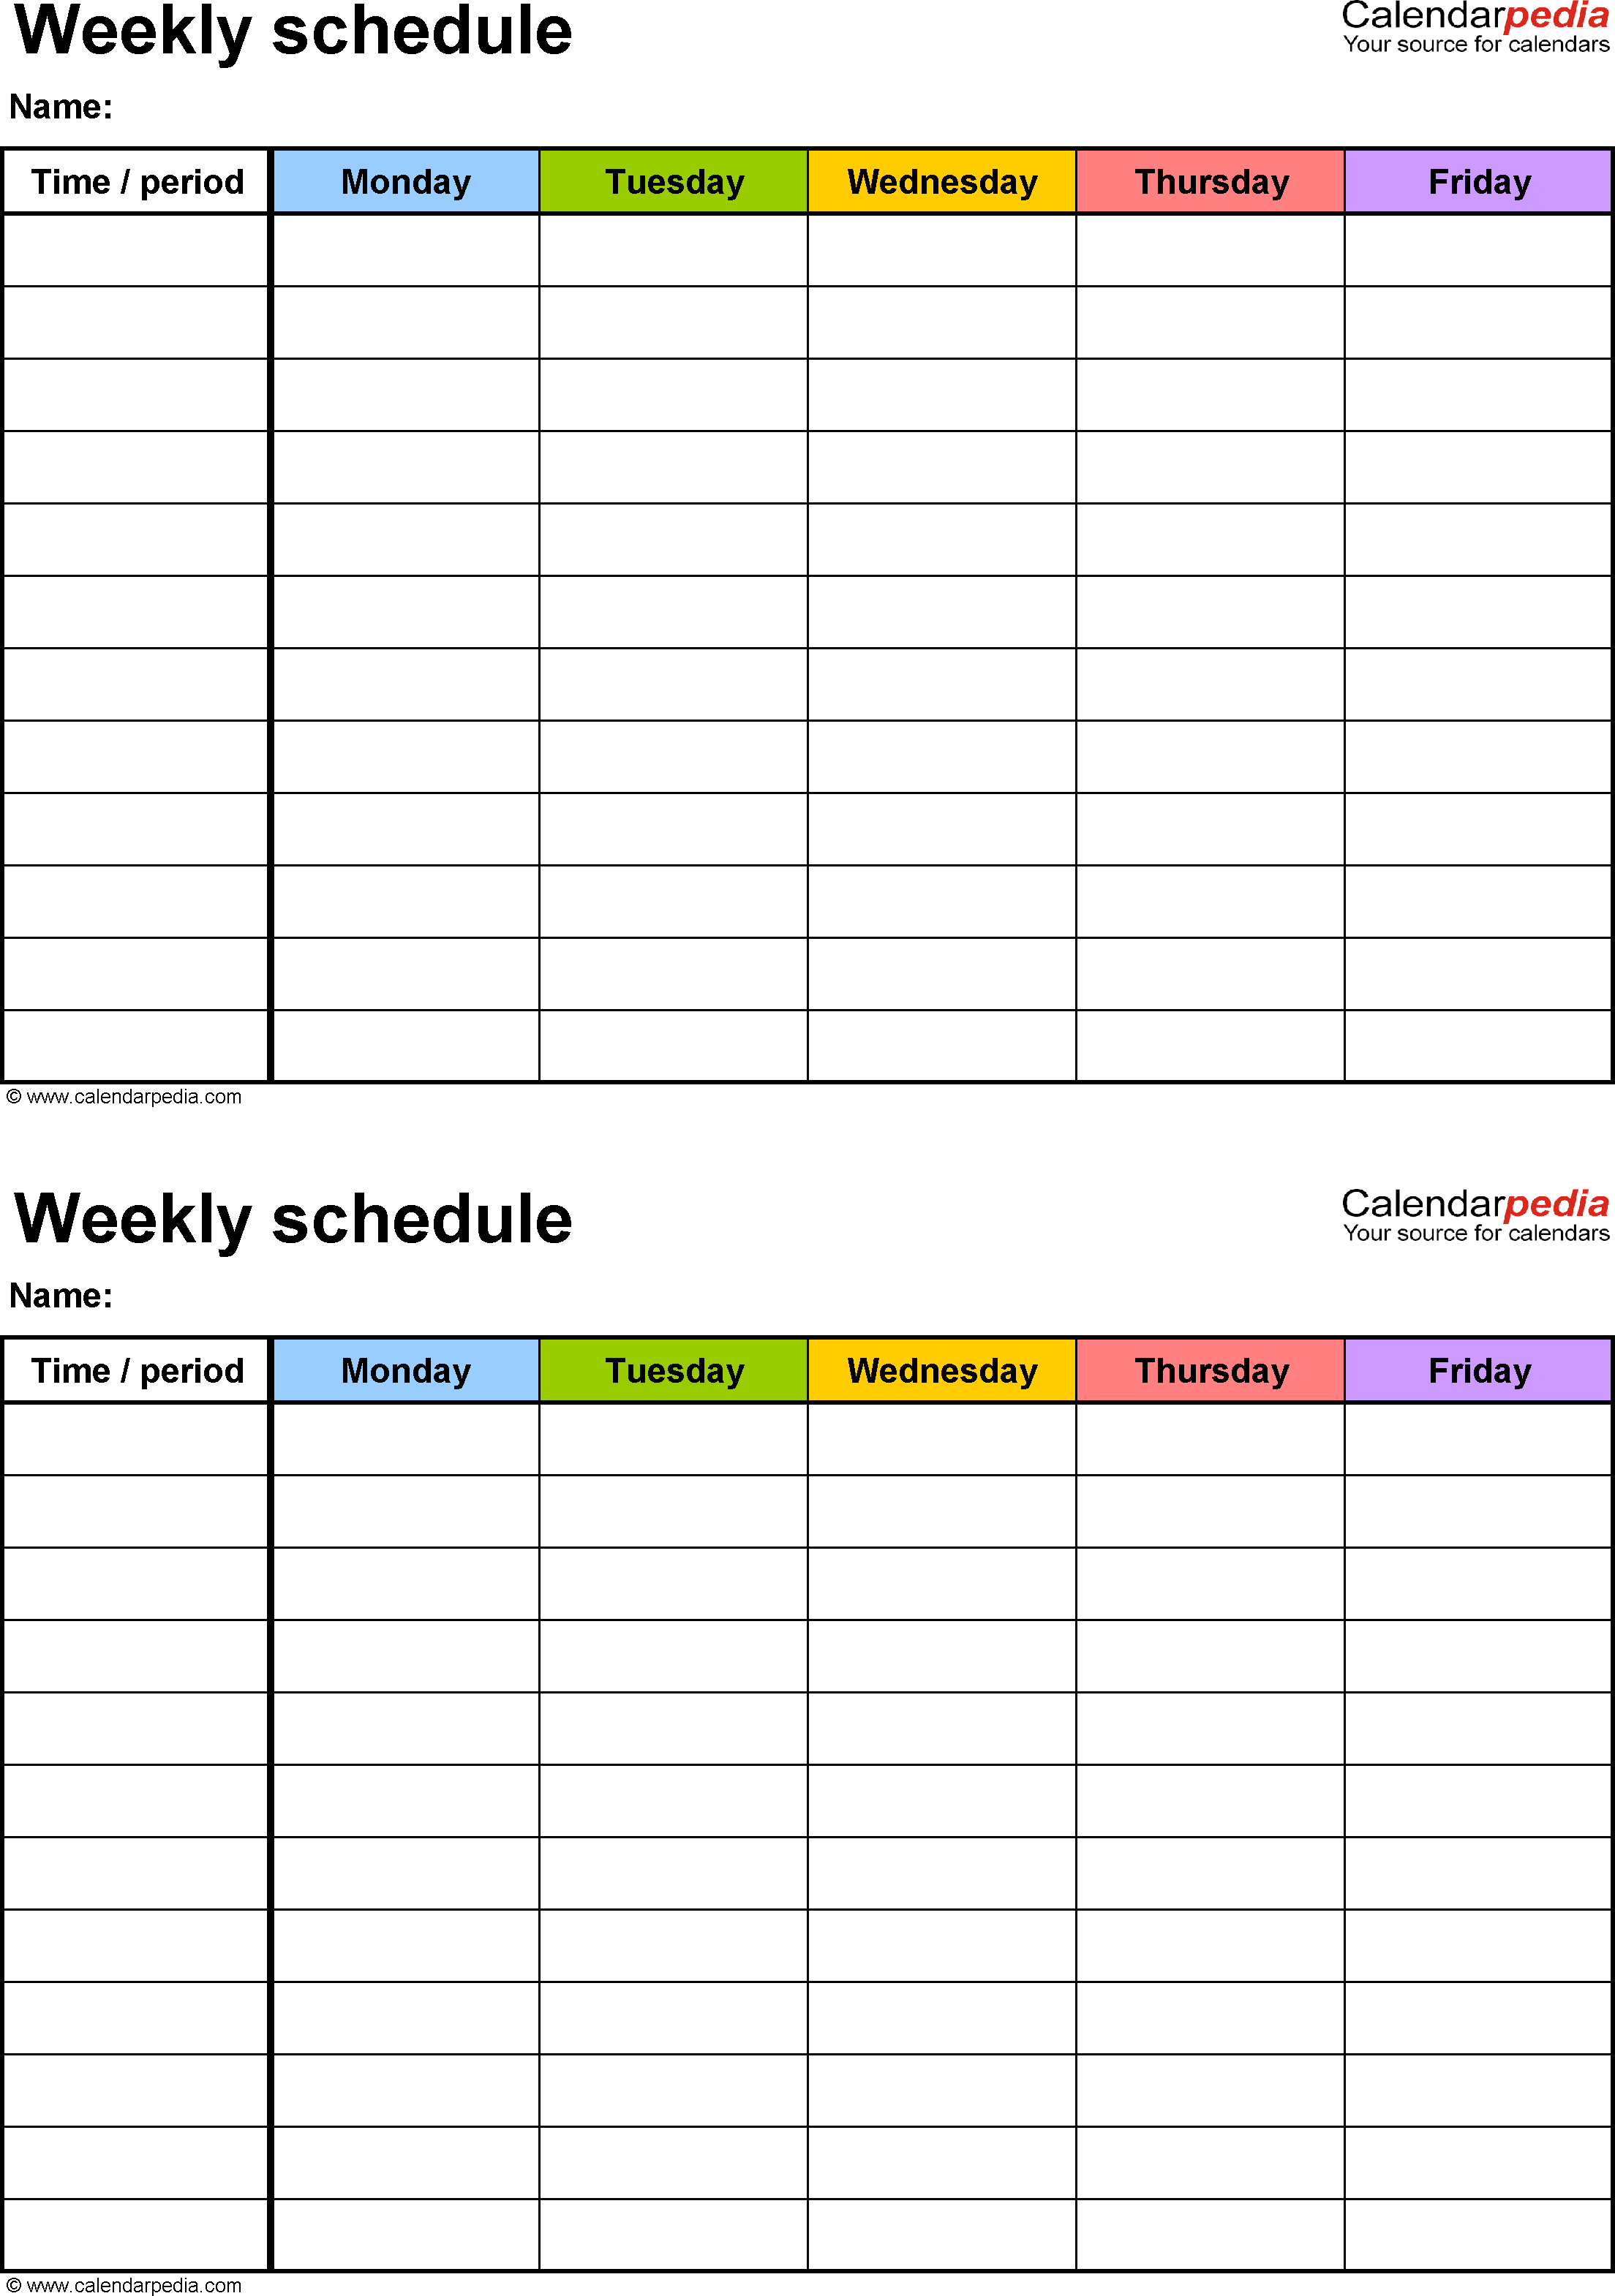 online daily schedule maker thevillas co